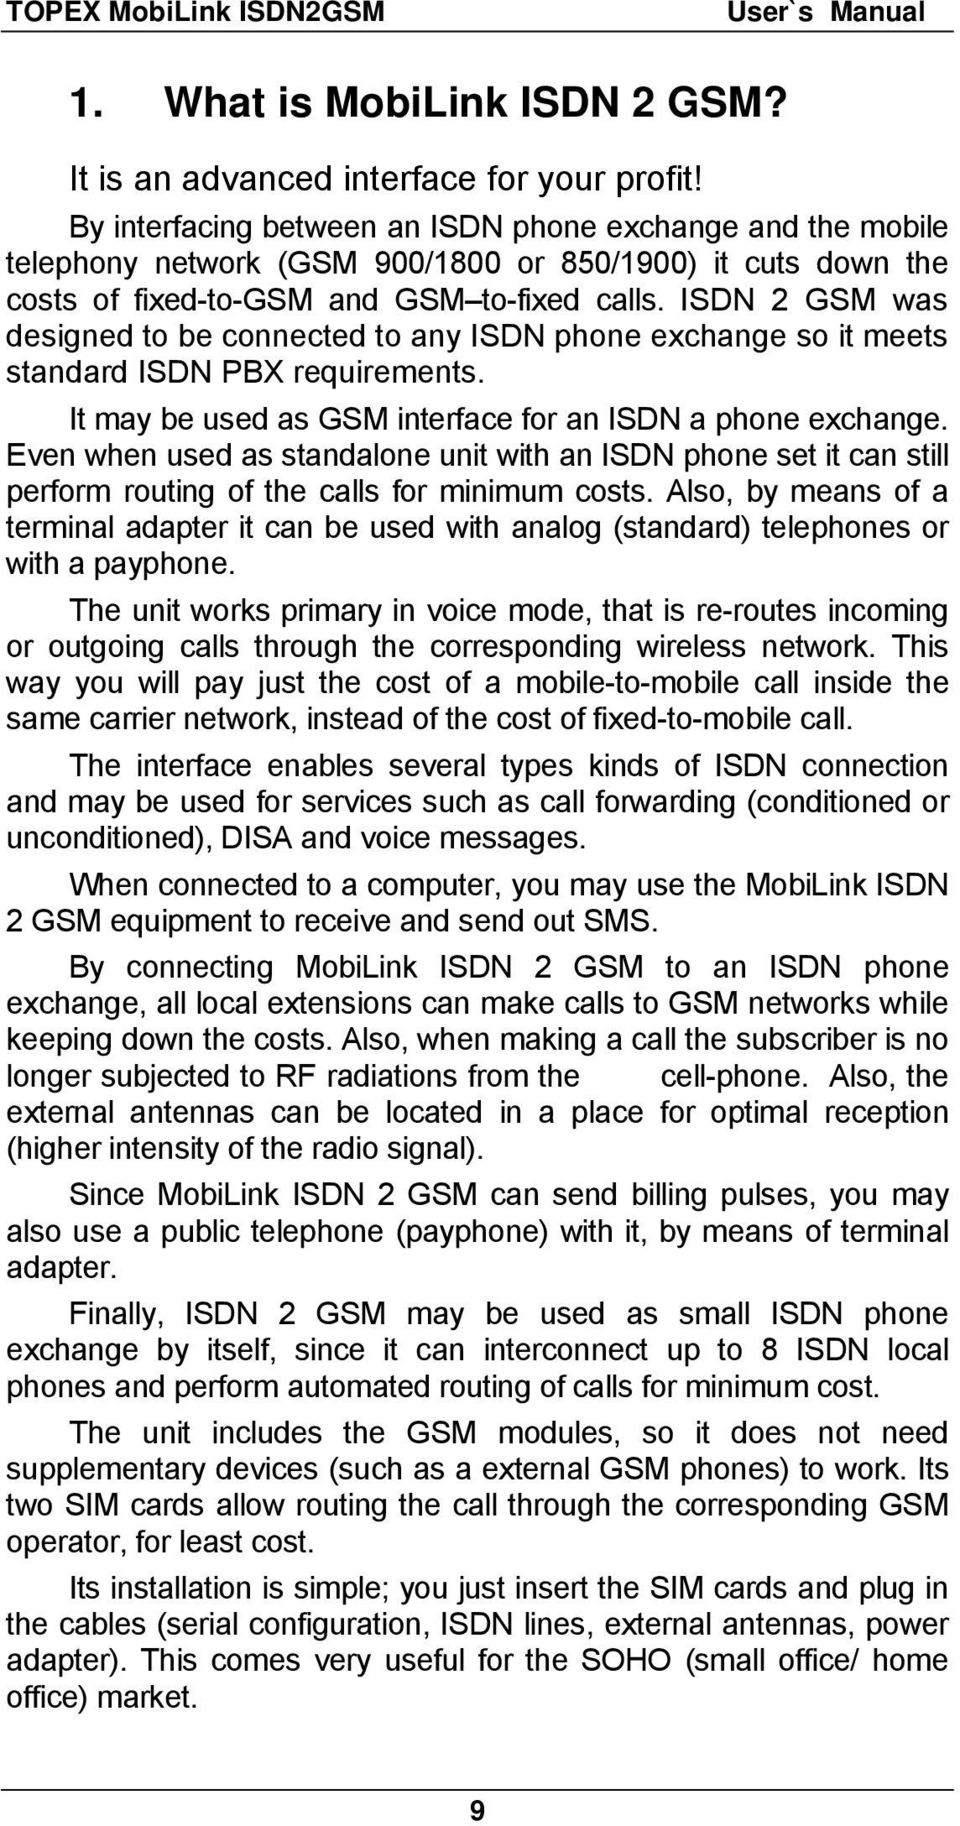 ISDN 2 GSM was designed to be connected to any ISDN phone exchange so it meets standard ISDN PBX requirements. It may be used as GSM interface for an ISDN a phone exchange.